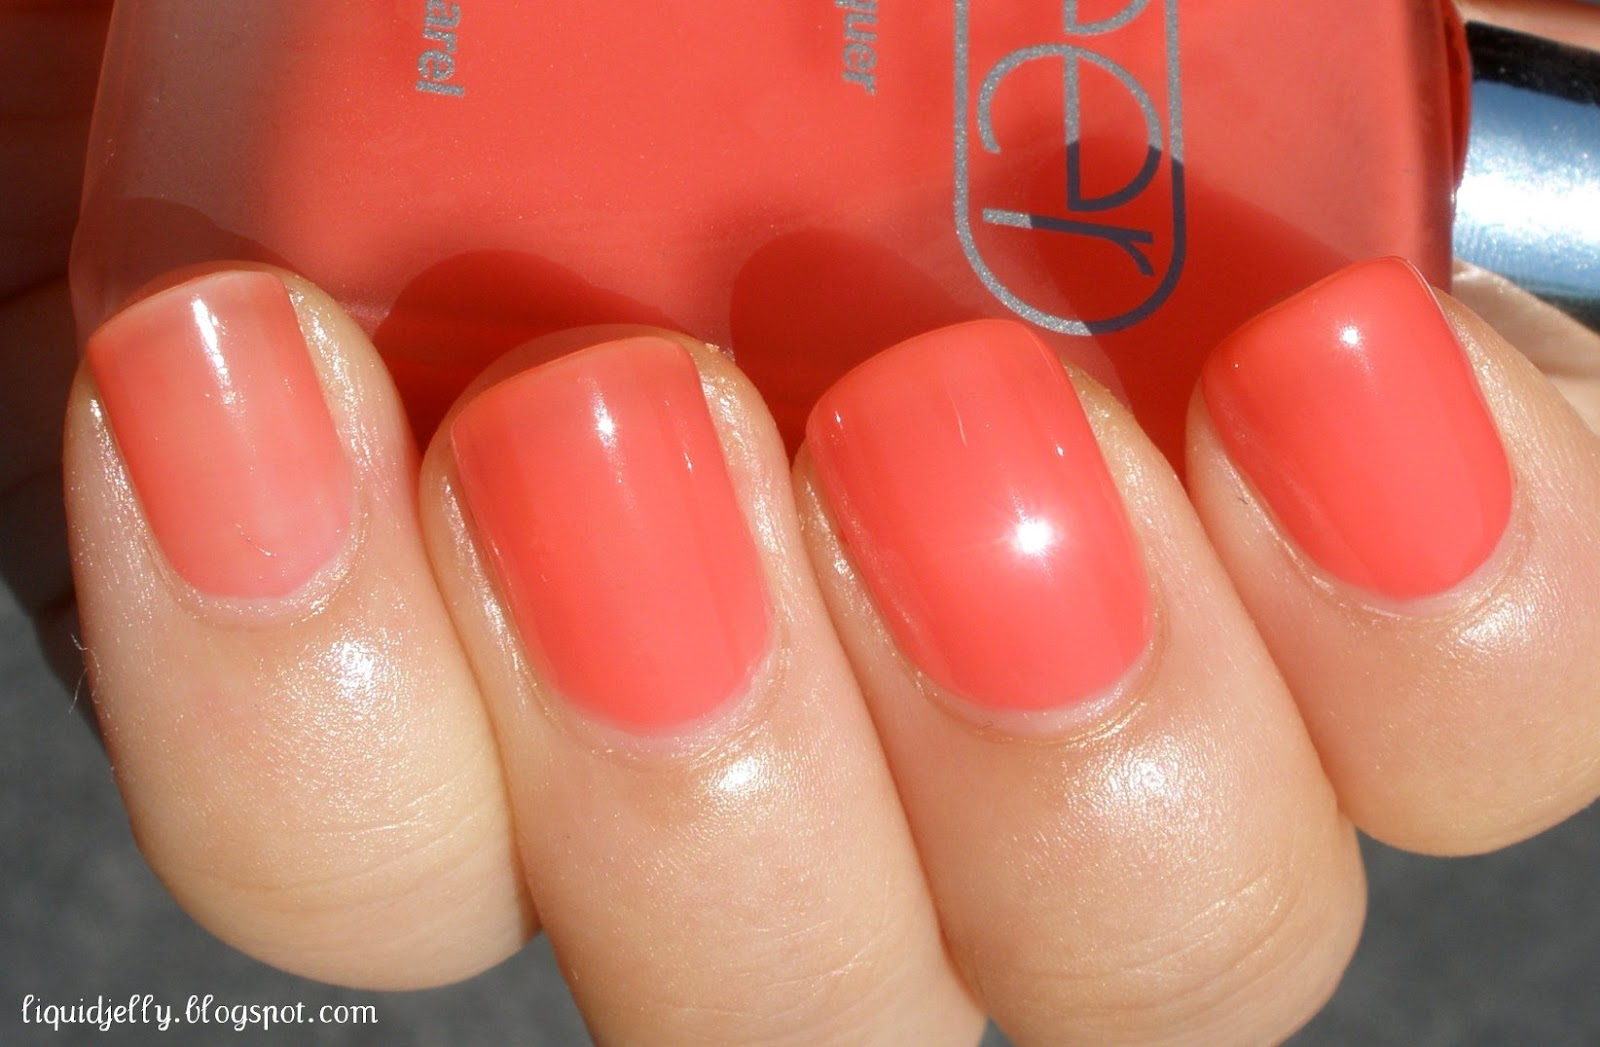 Liquid Jelly: American Apparel Sheer Nail Polish Swatches